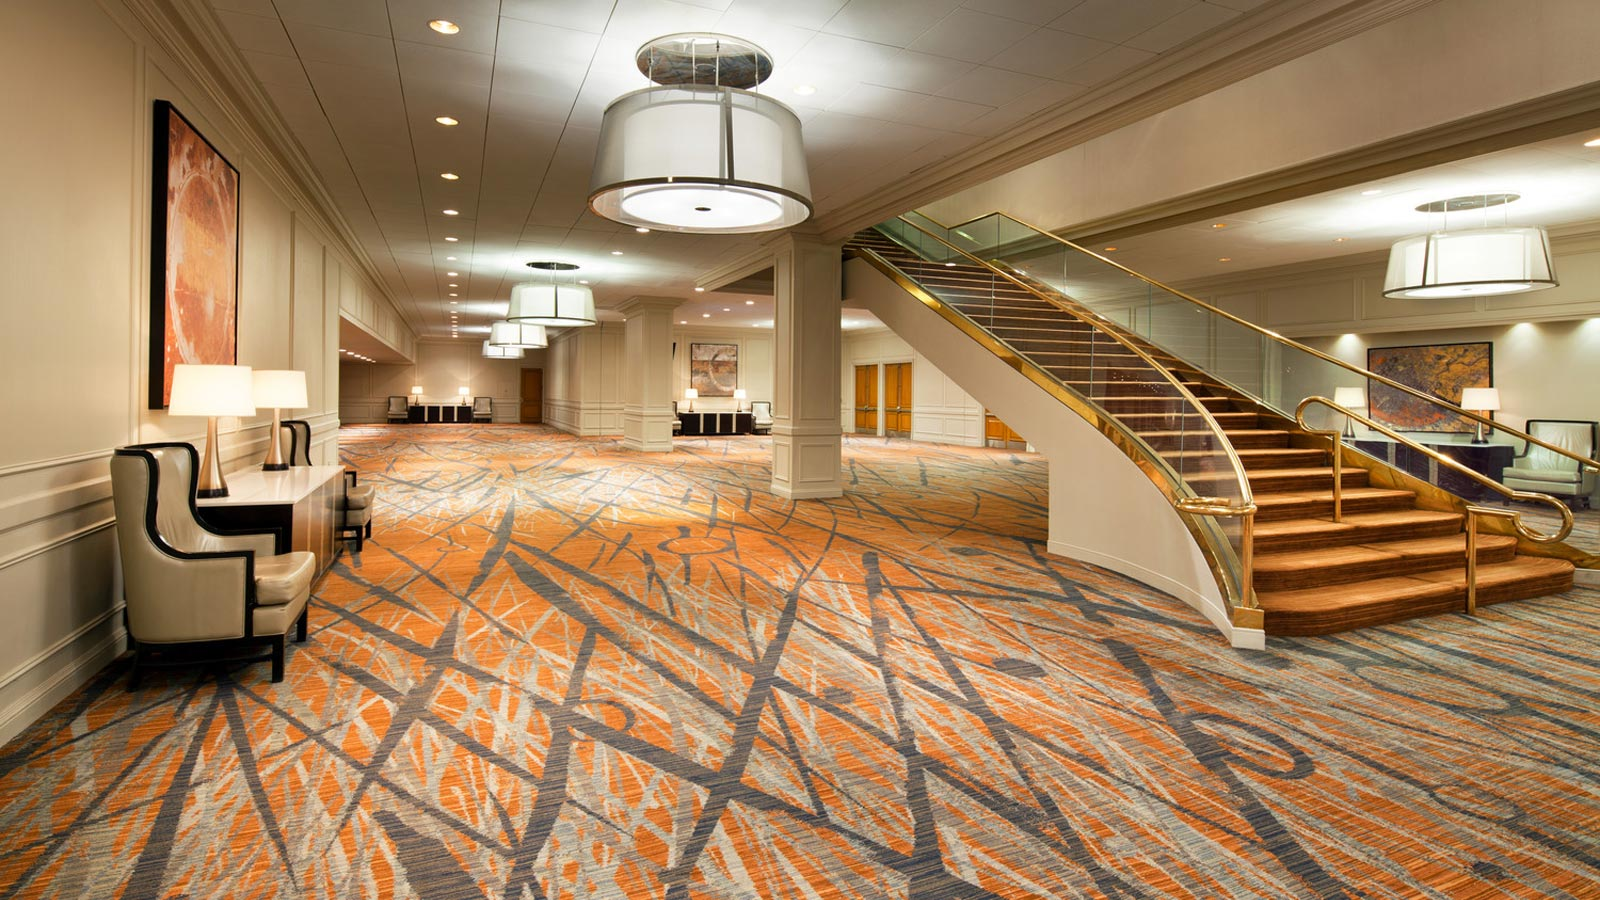 The Westin Galleria Houston - Galleria Ballroom Foyer